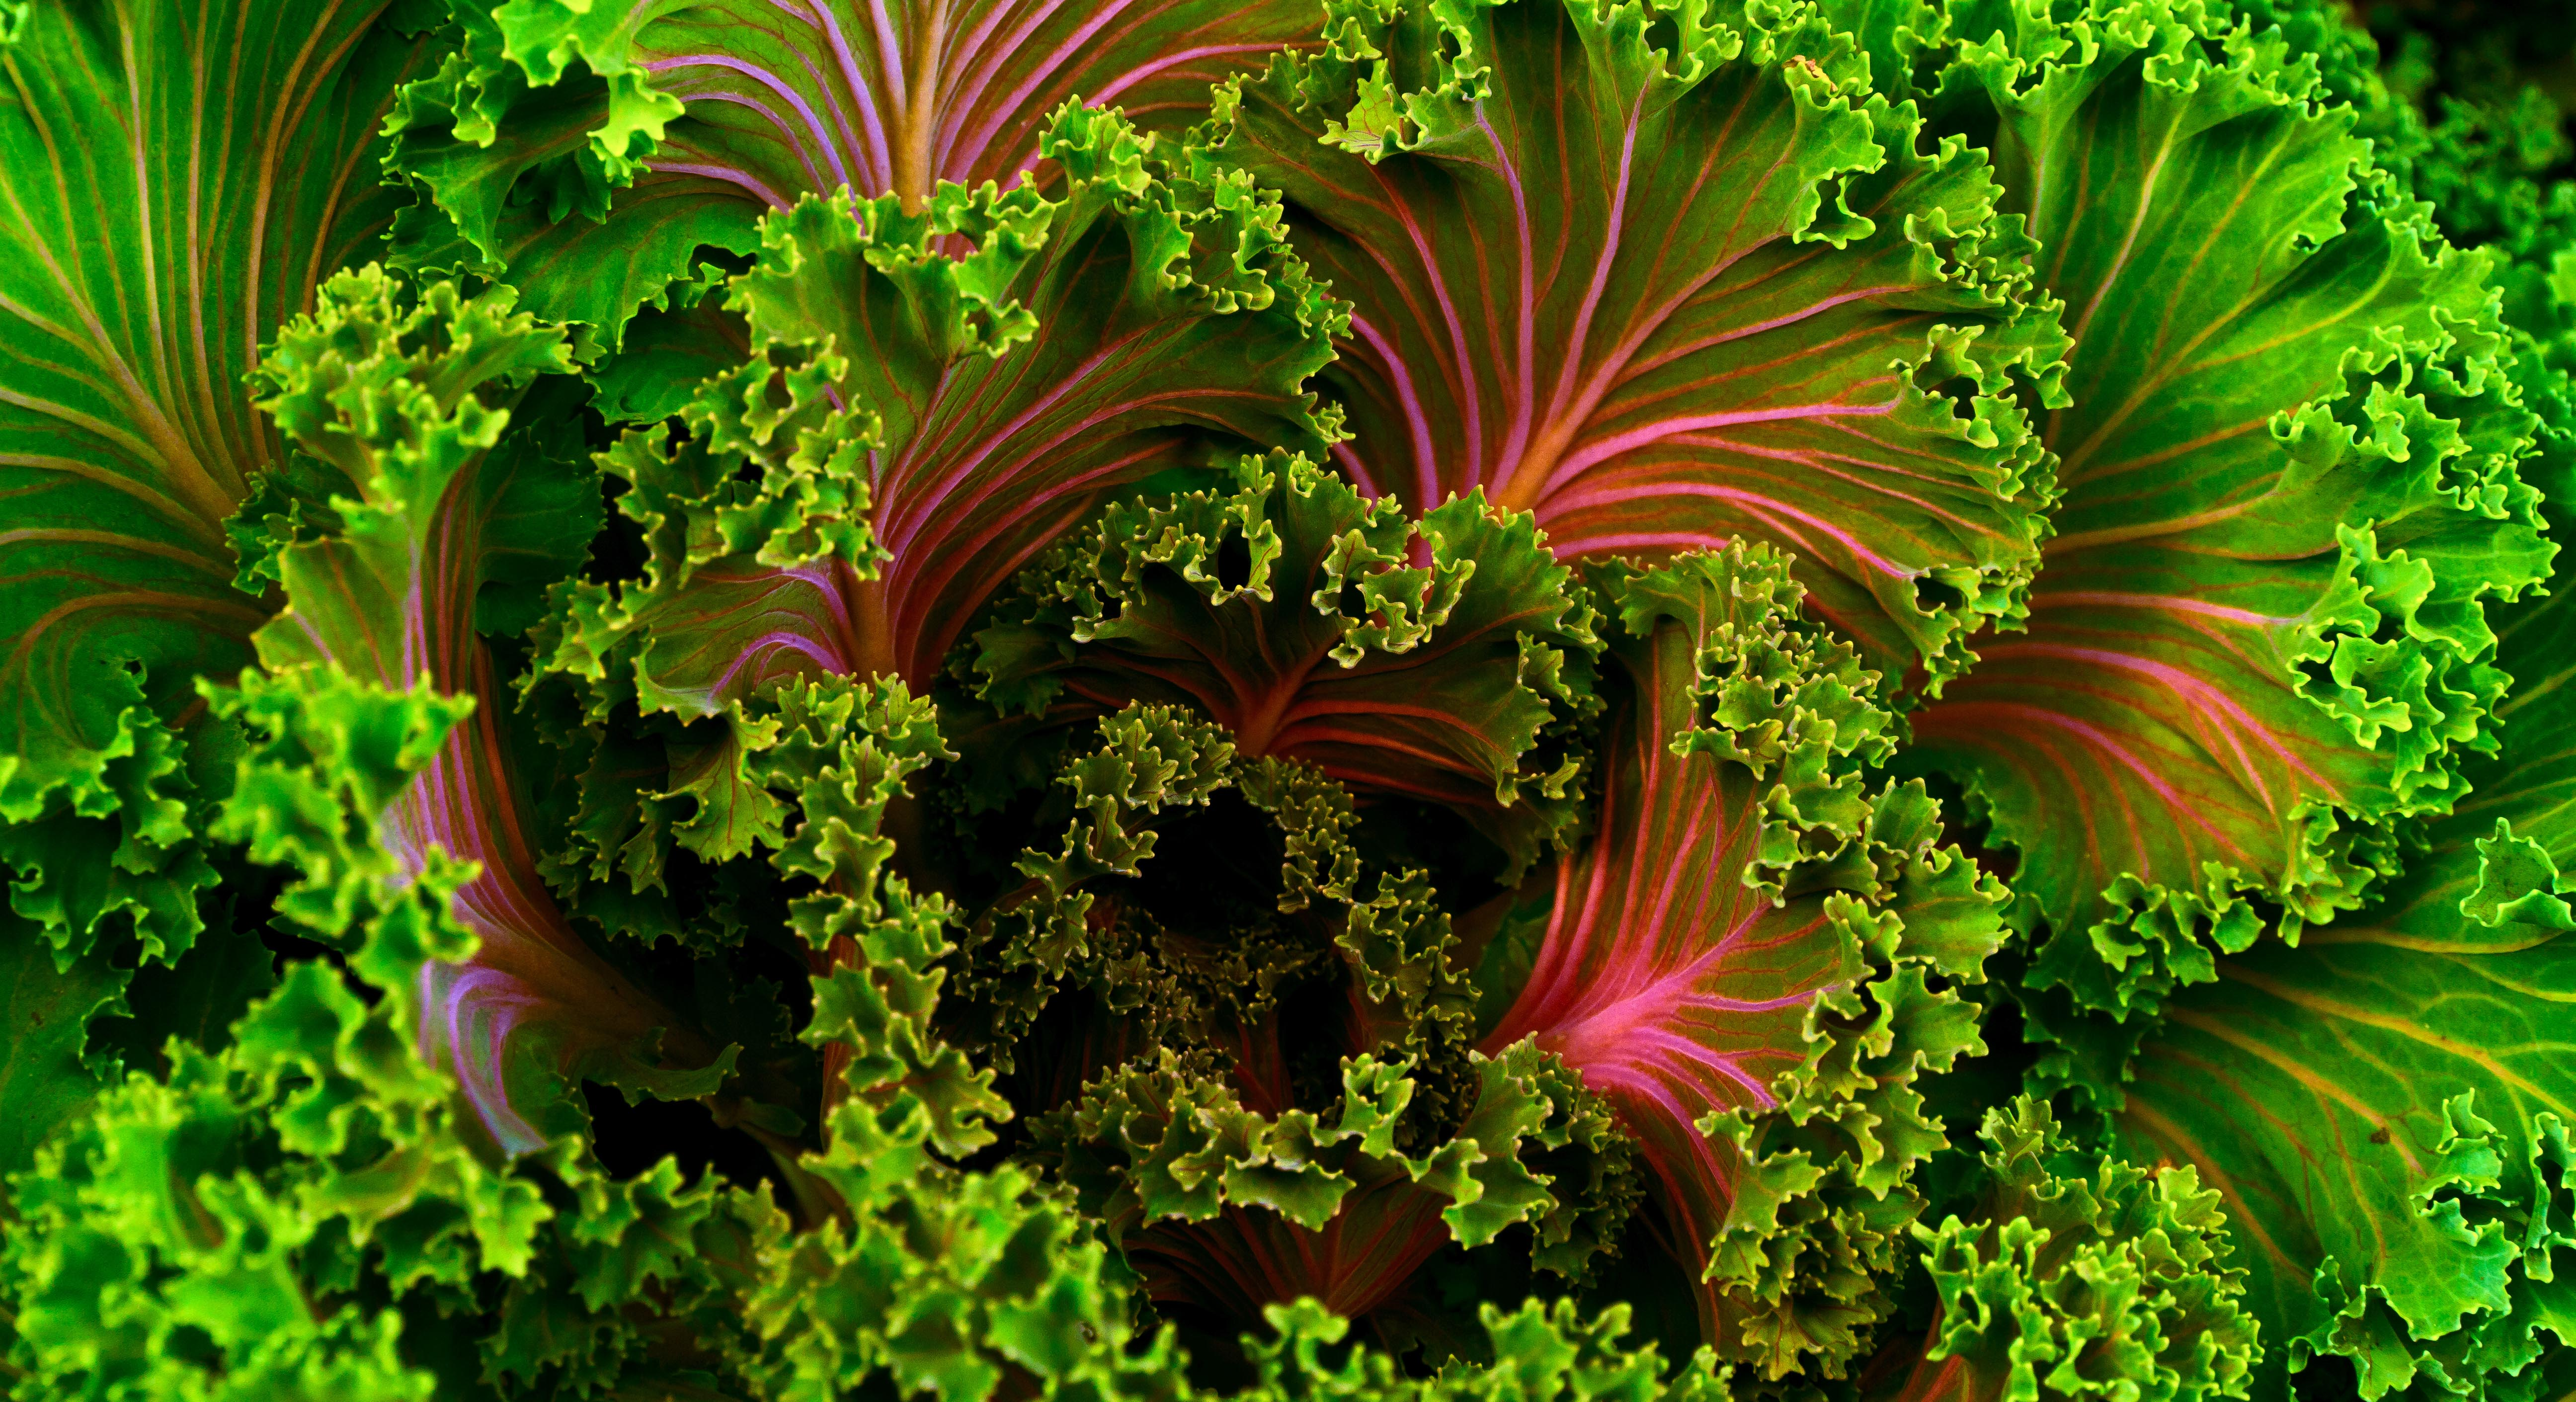 Why There's No Reason To Be Afraid of 'Killer Kale'